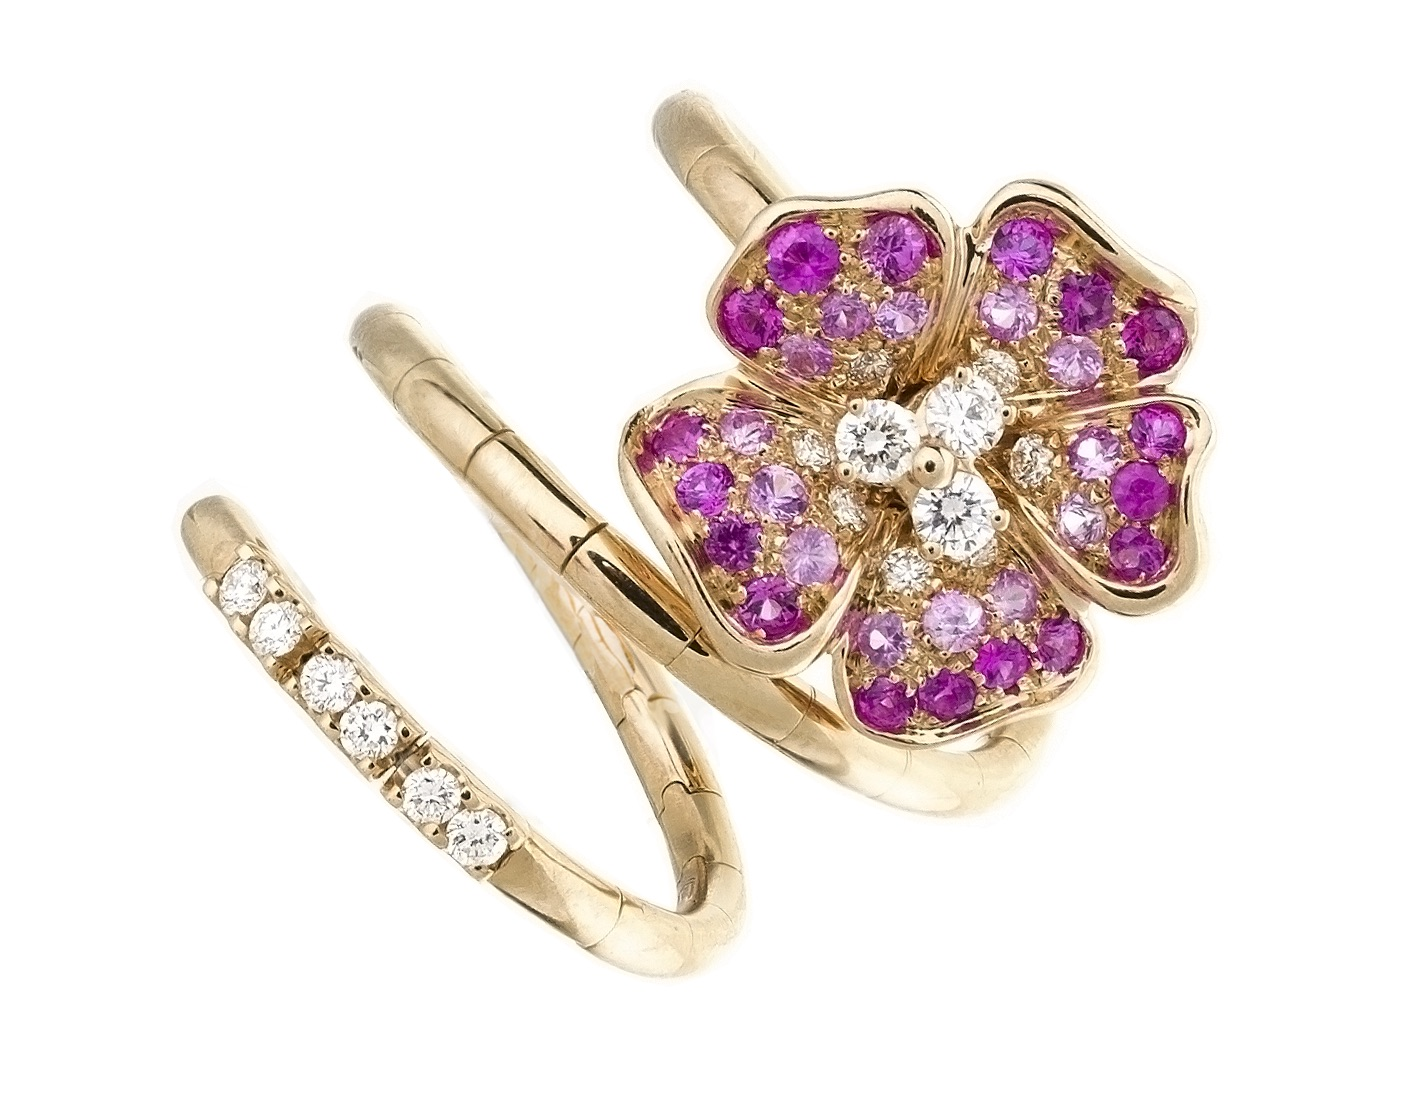 Leo Pizzo Fiore collection ring | JCK On Your Market